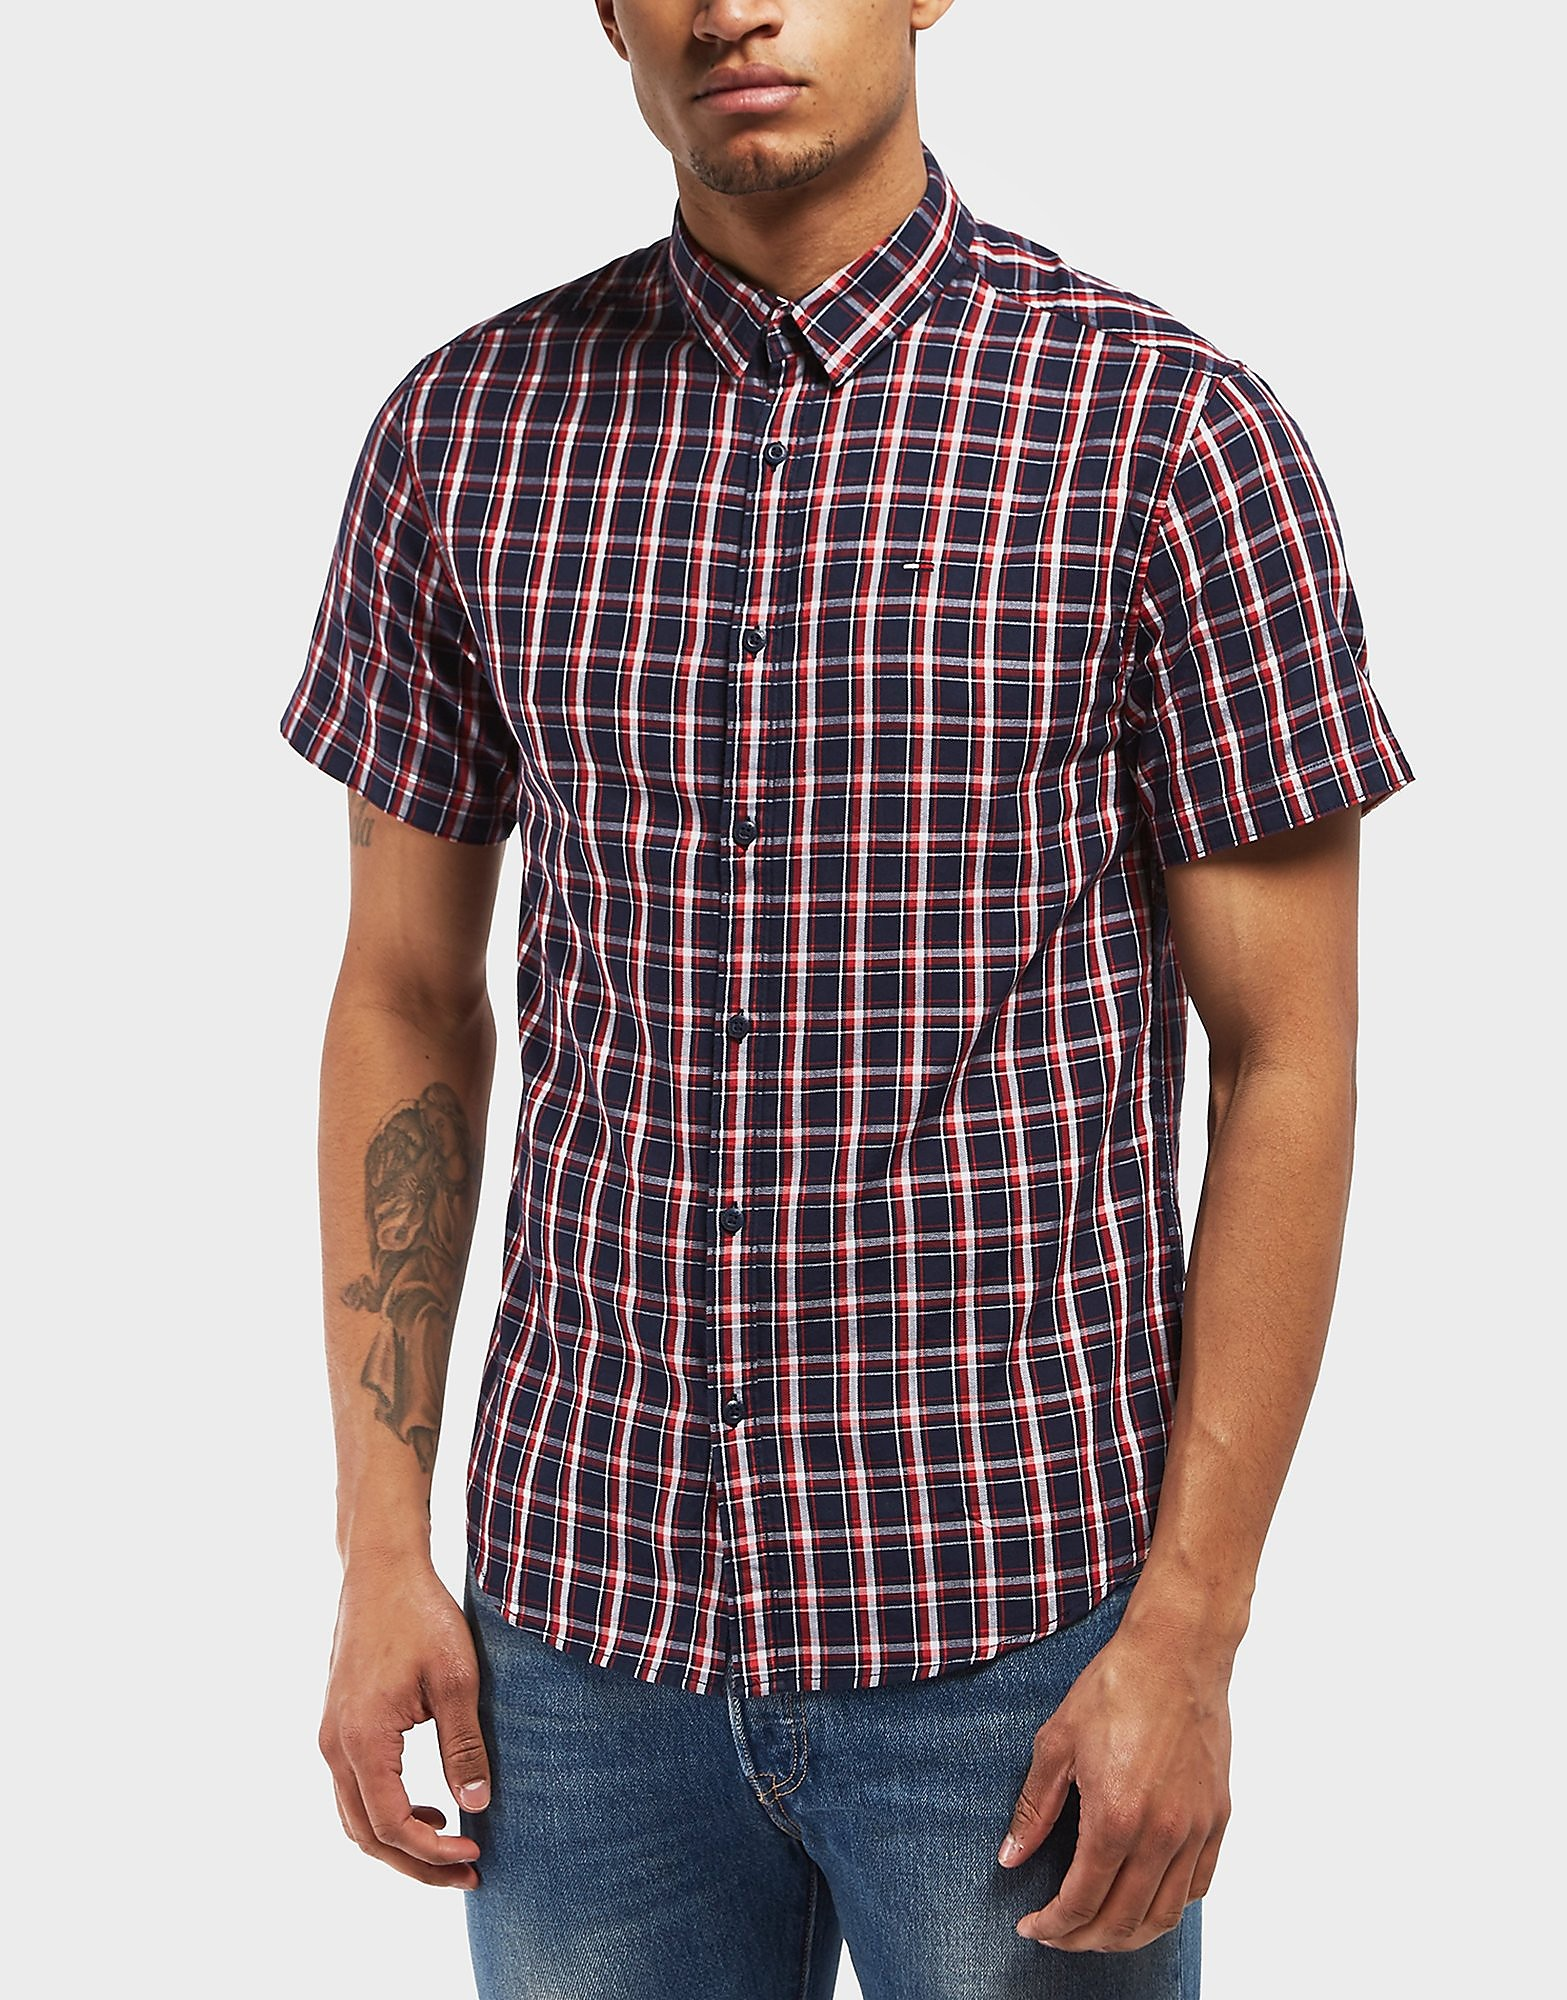 Tommy Hilfiger Short Sleeve Check Shirt